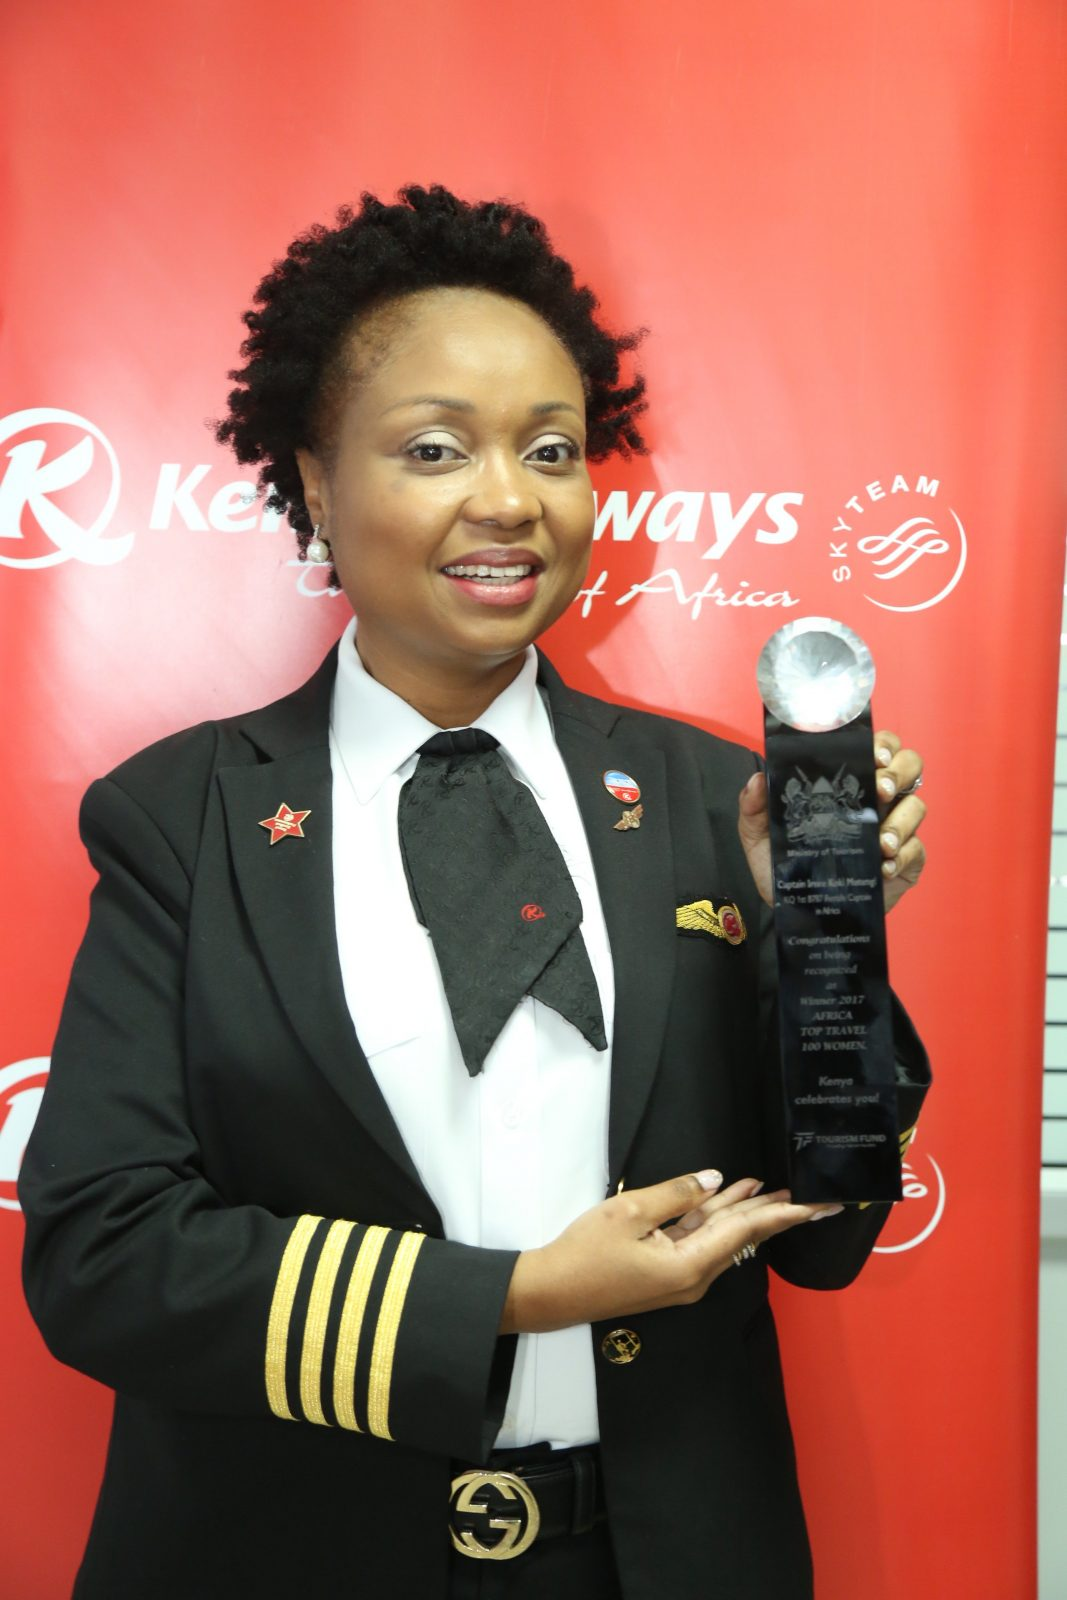 Cpt. Irene Koki Mutungi with KQ's COO Jan De Vegt and Director Flight Operations Cpt. Njoroge